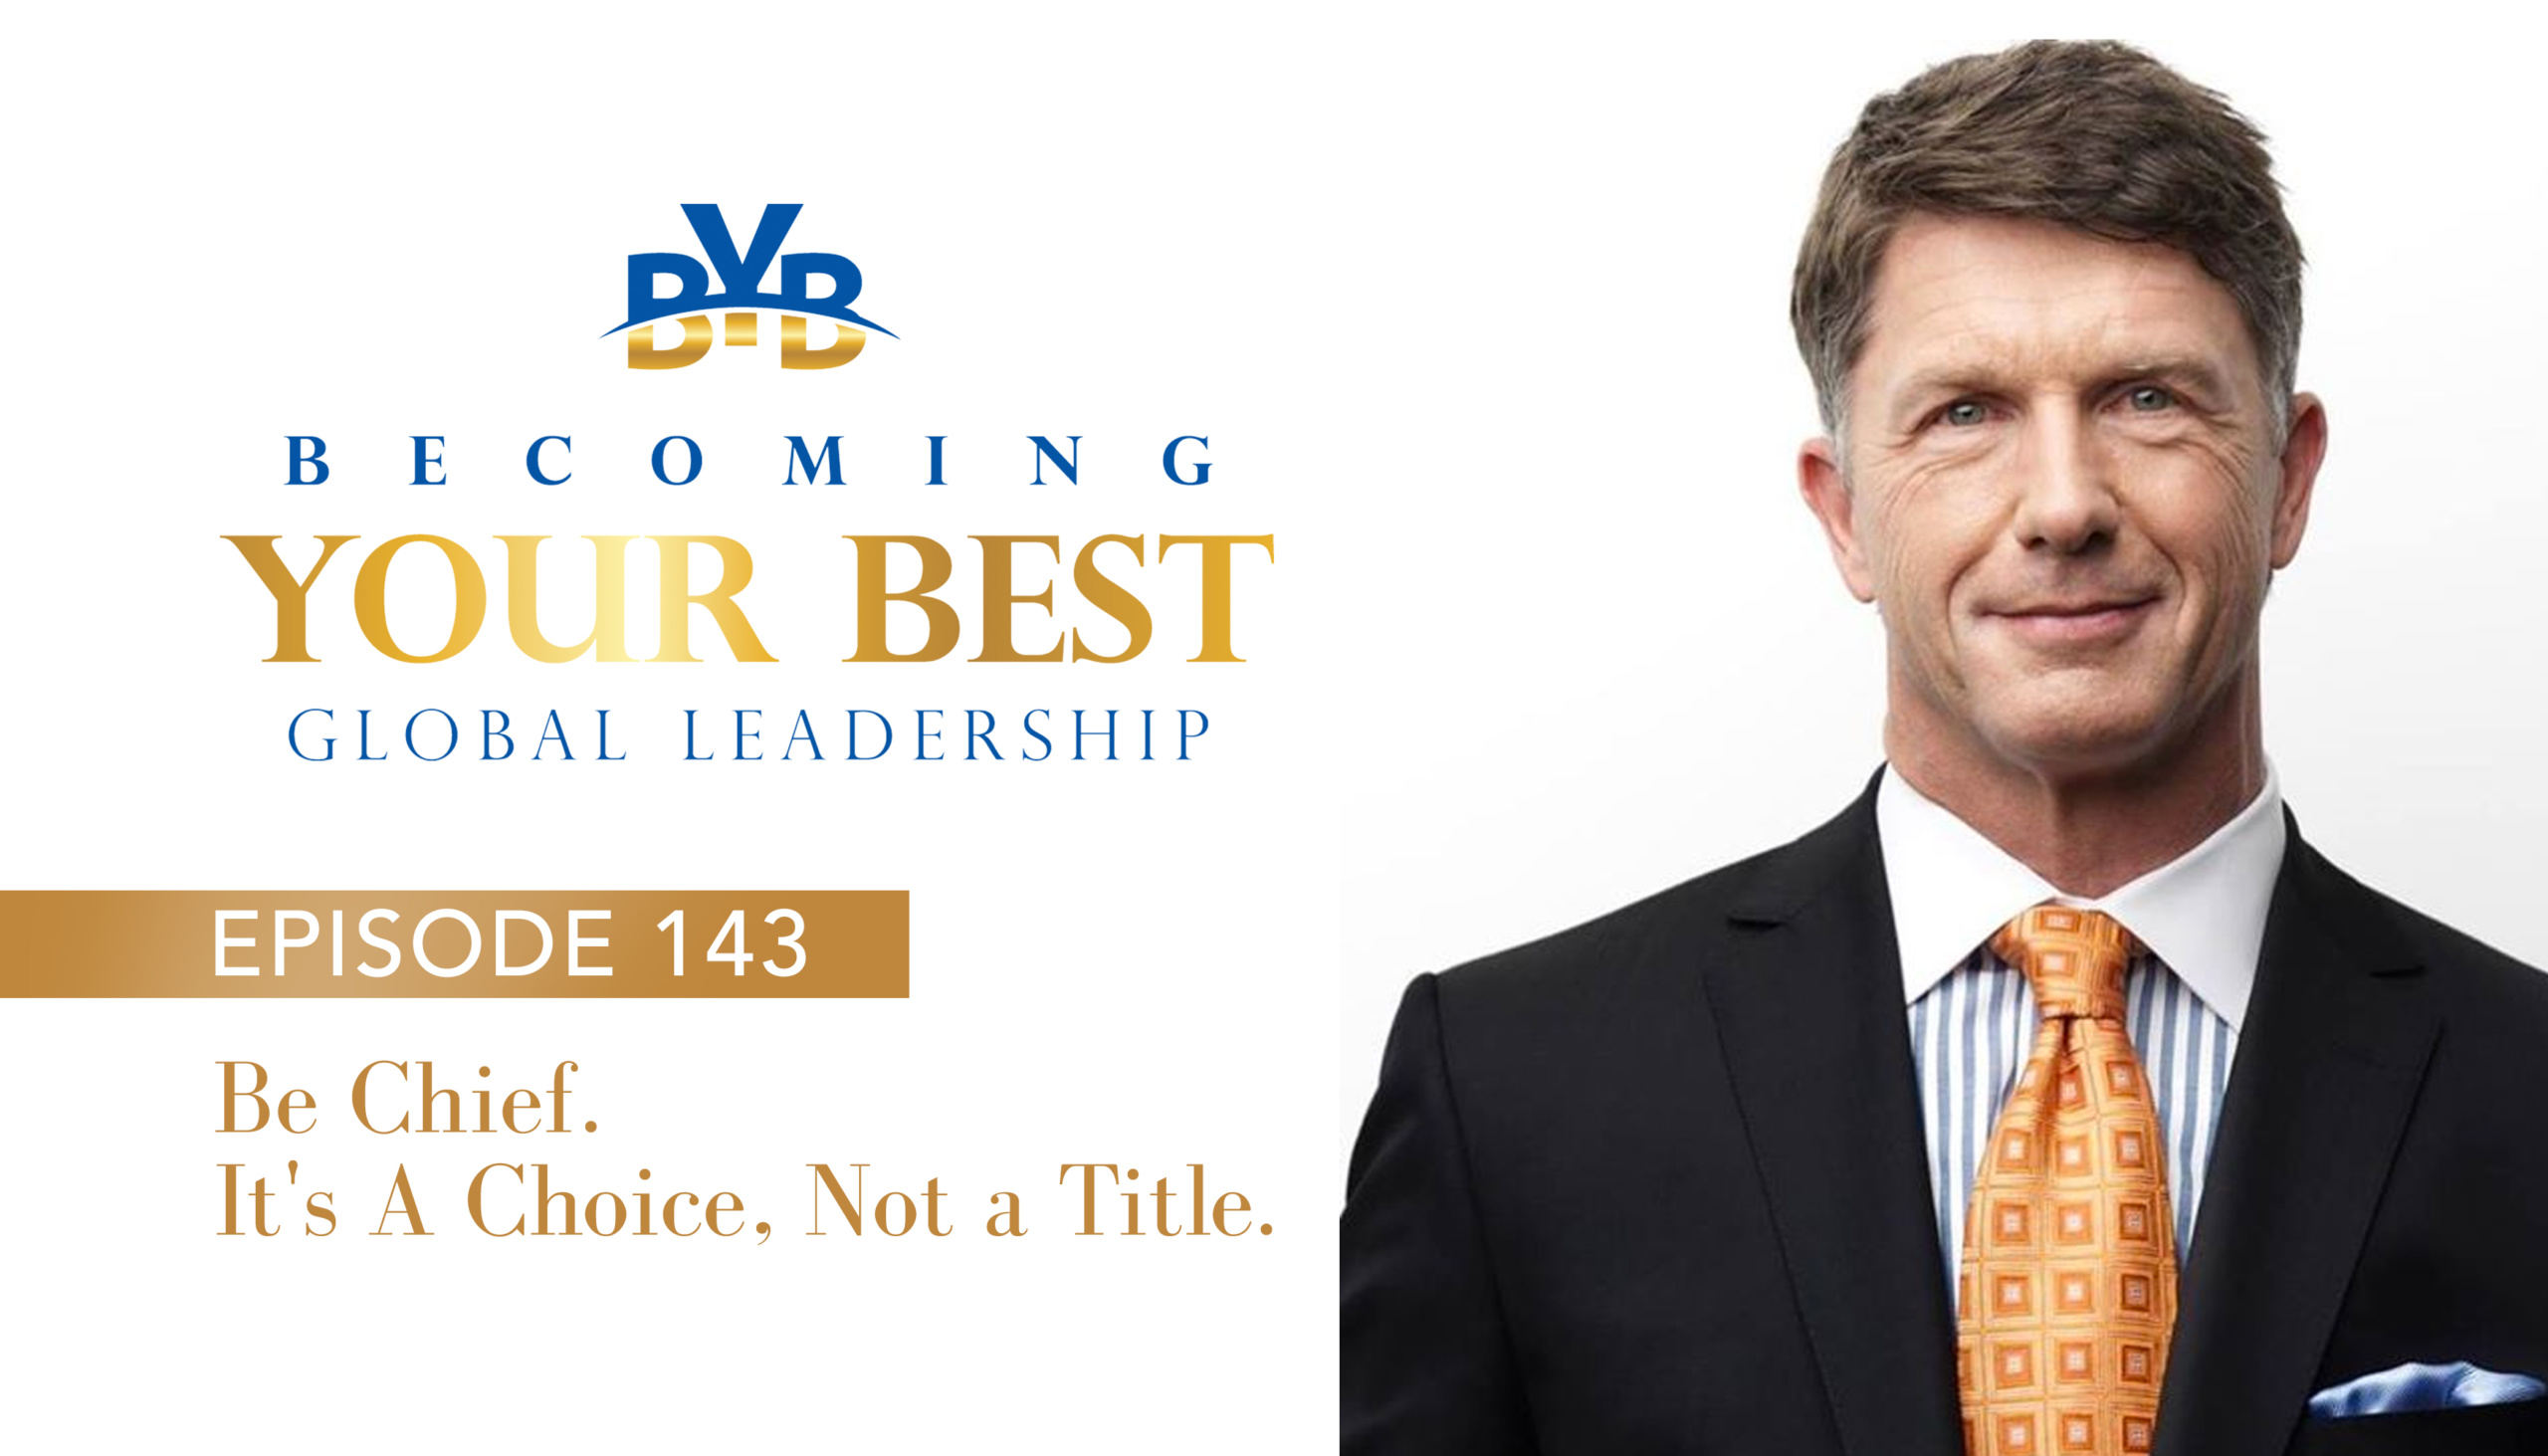 Episode 143 – Be Chief. It's A Choice, Not a Title!